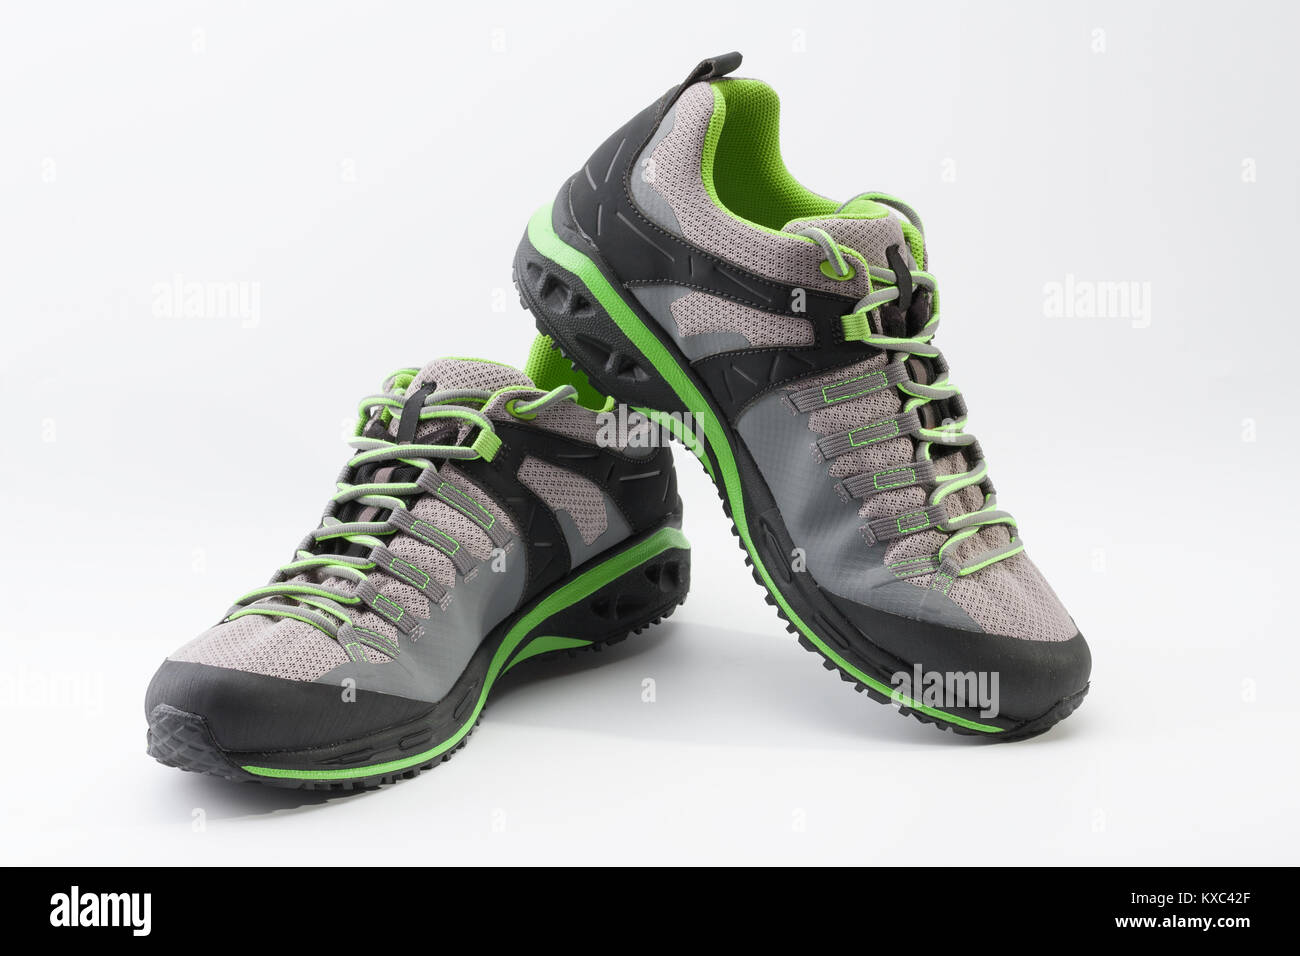 Outdoors shoes for man for different activities, trail running, free running, fast climbing, hiking, studio shoot - Stock Image